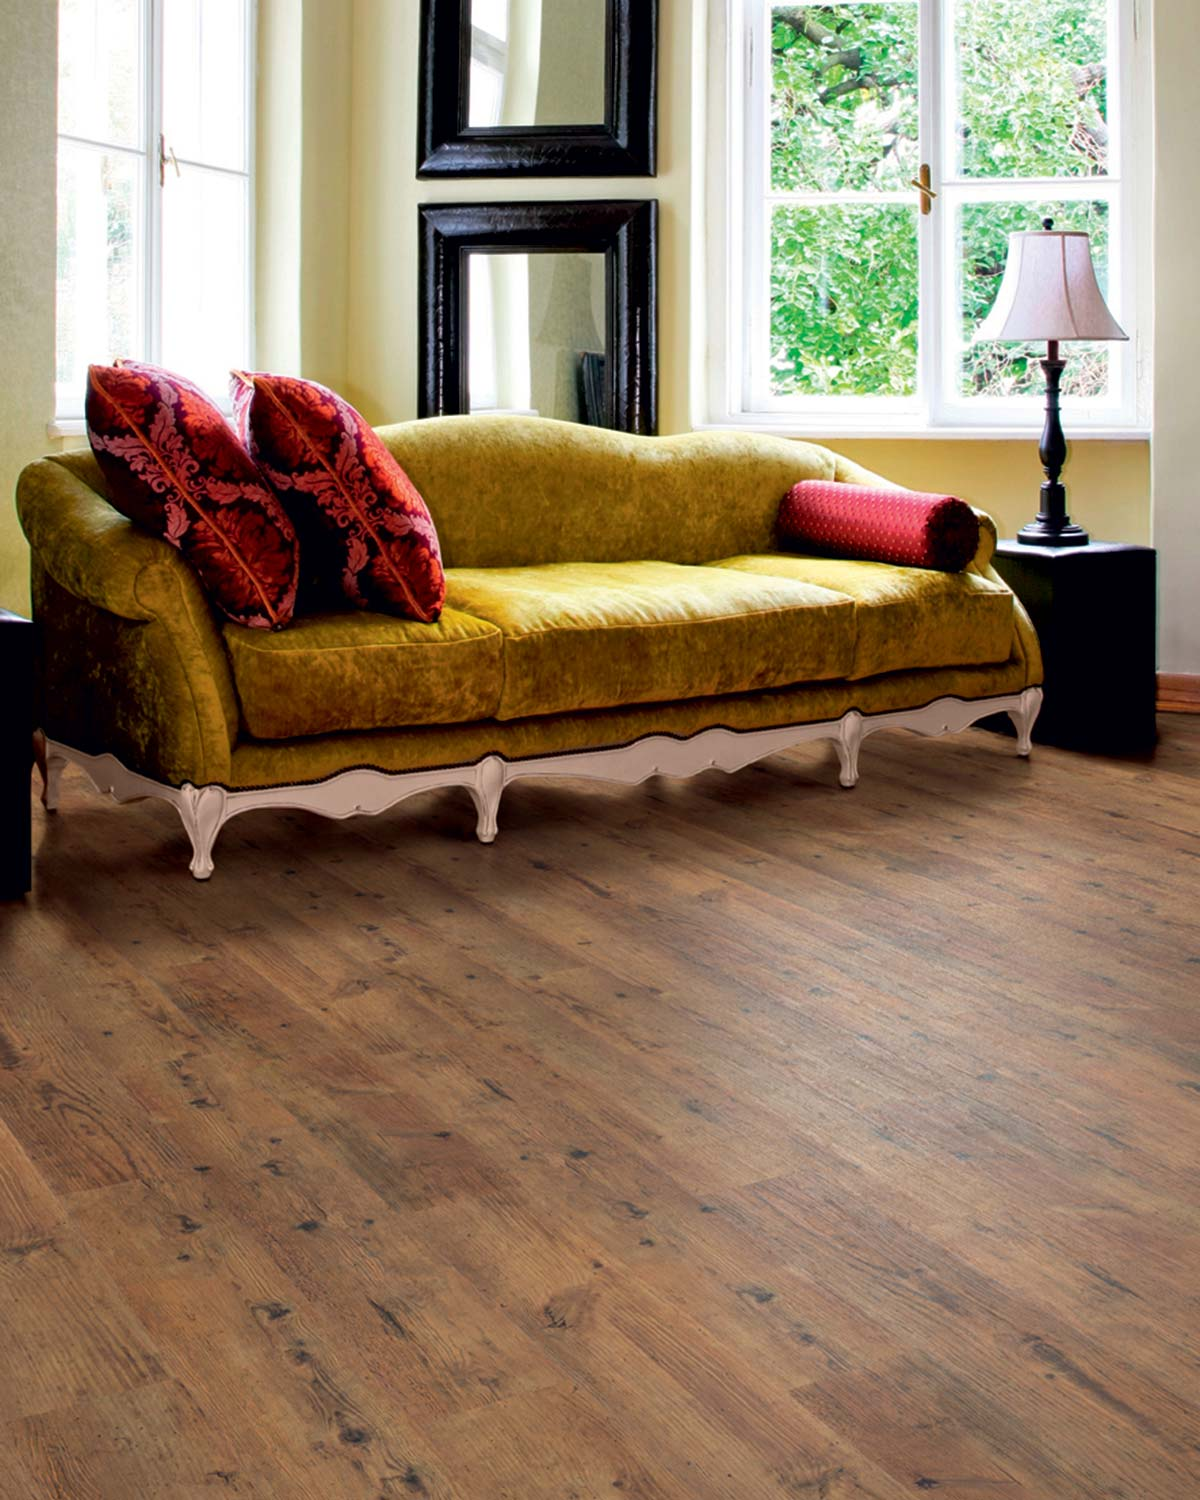 Rustic Oak Effect Luxury Vinyl Flooring From J2